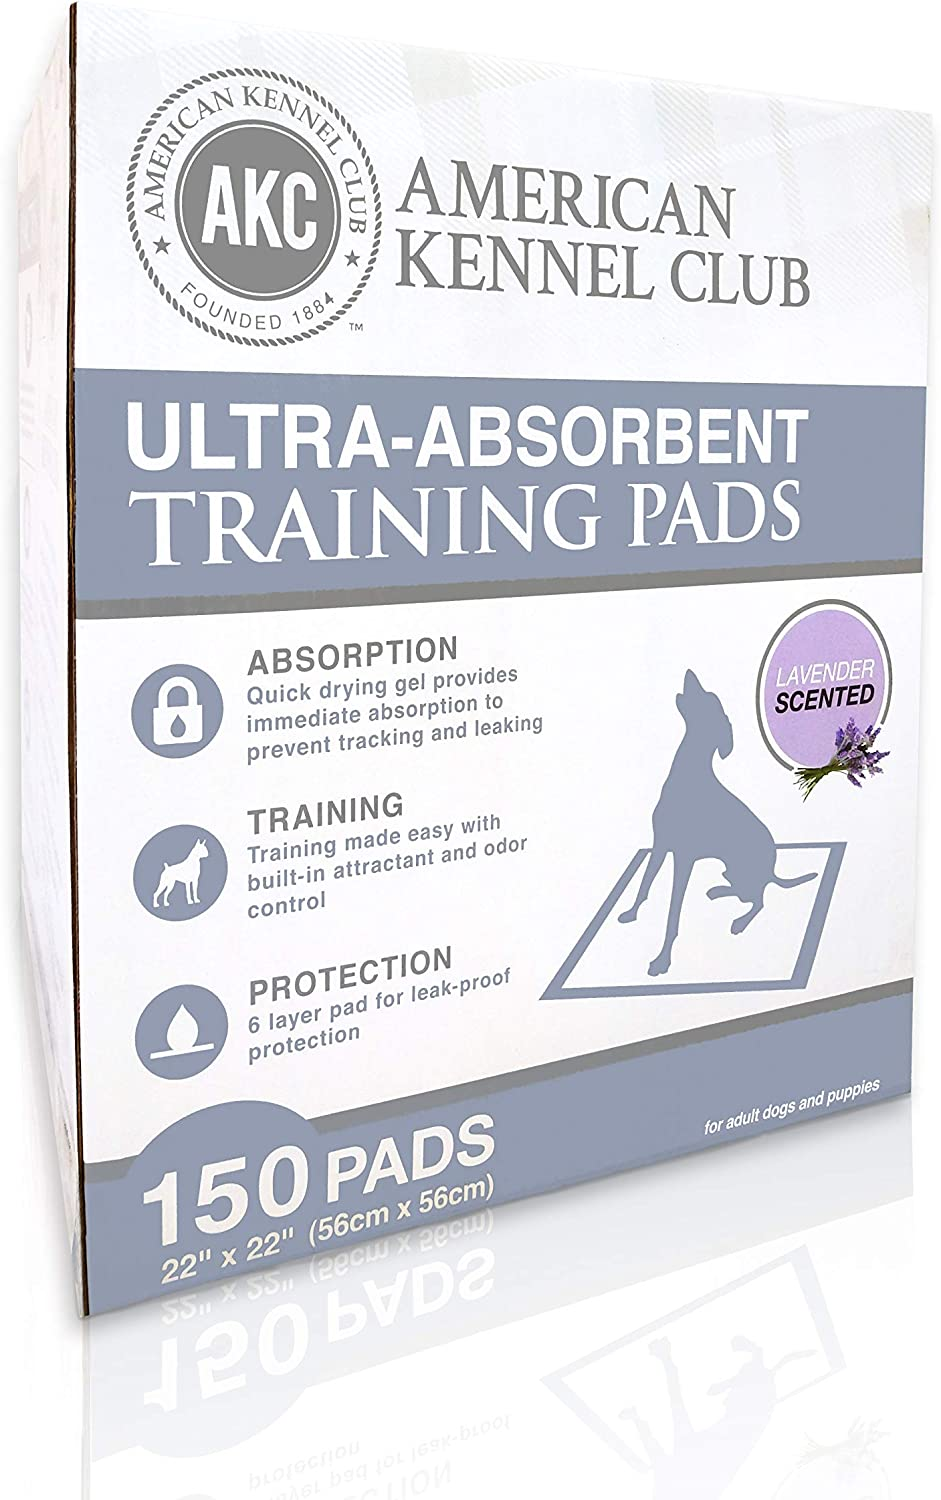 American Kennel Club Lavender Scented Training Pads In Box (150 Pack)